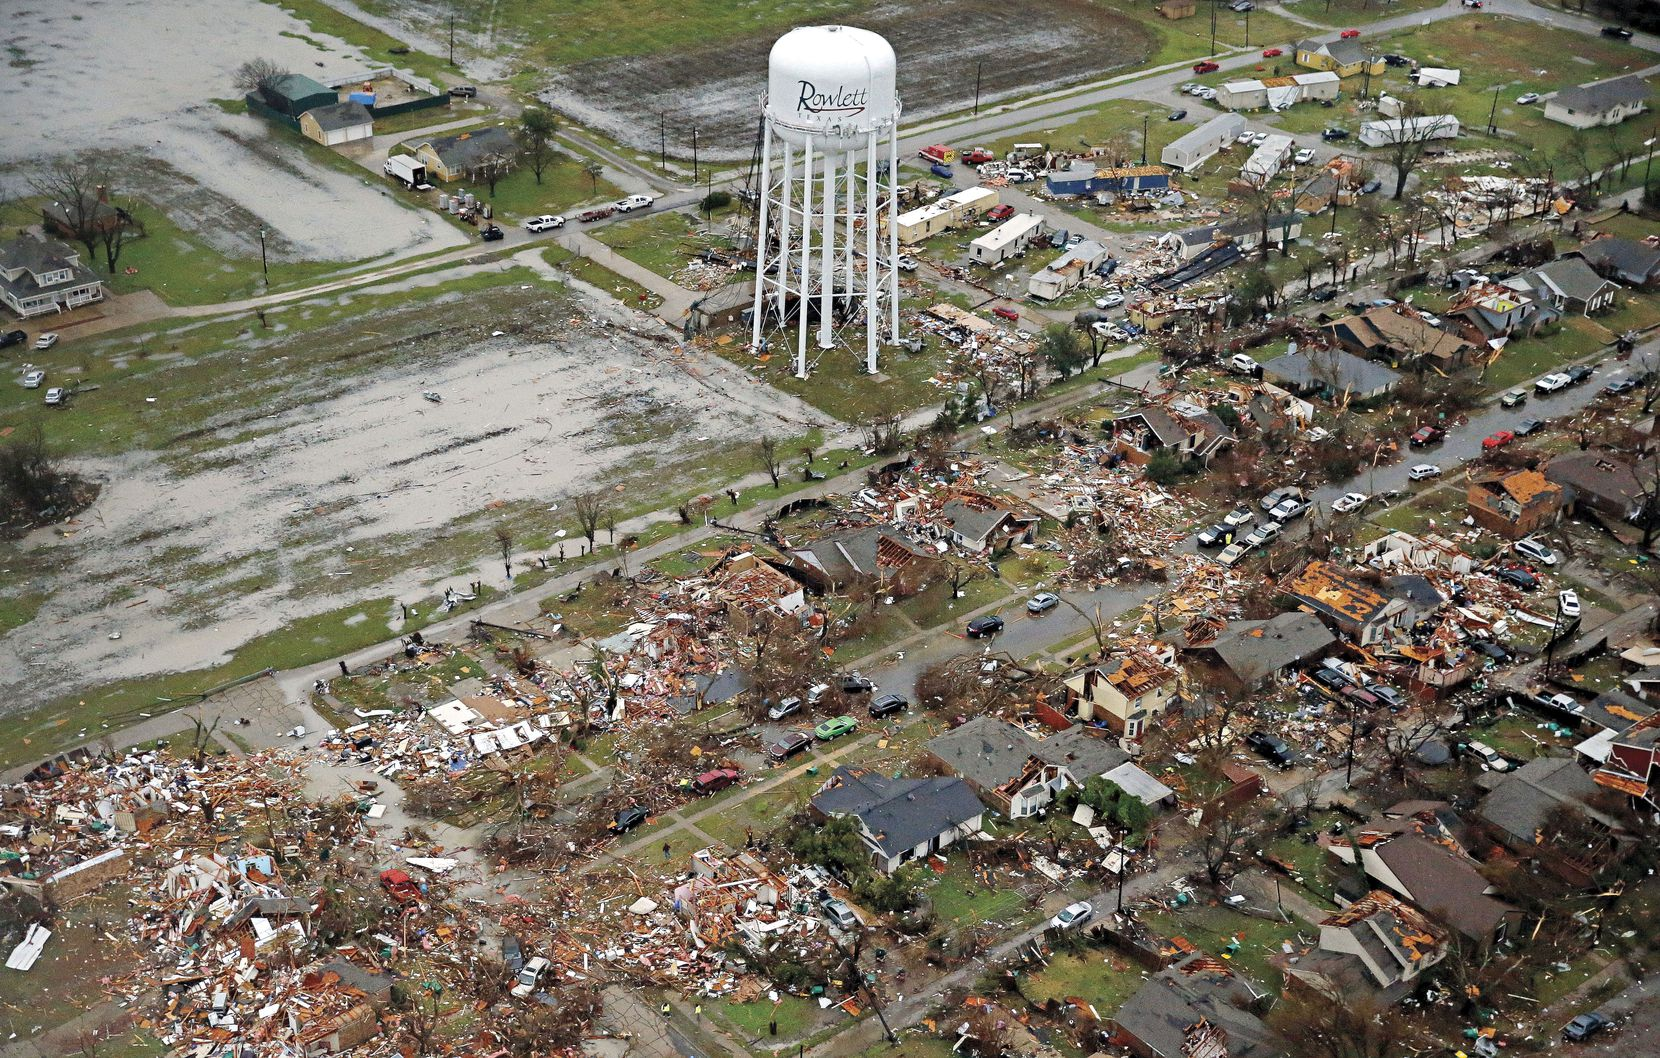 An aerial image of Rowlett from Dec. 27, 2015, shows the path of a tornado that ripped through the area on Christmas Eve. Nearly 450 buildings were destroyed by the deadly storm.